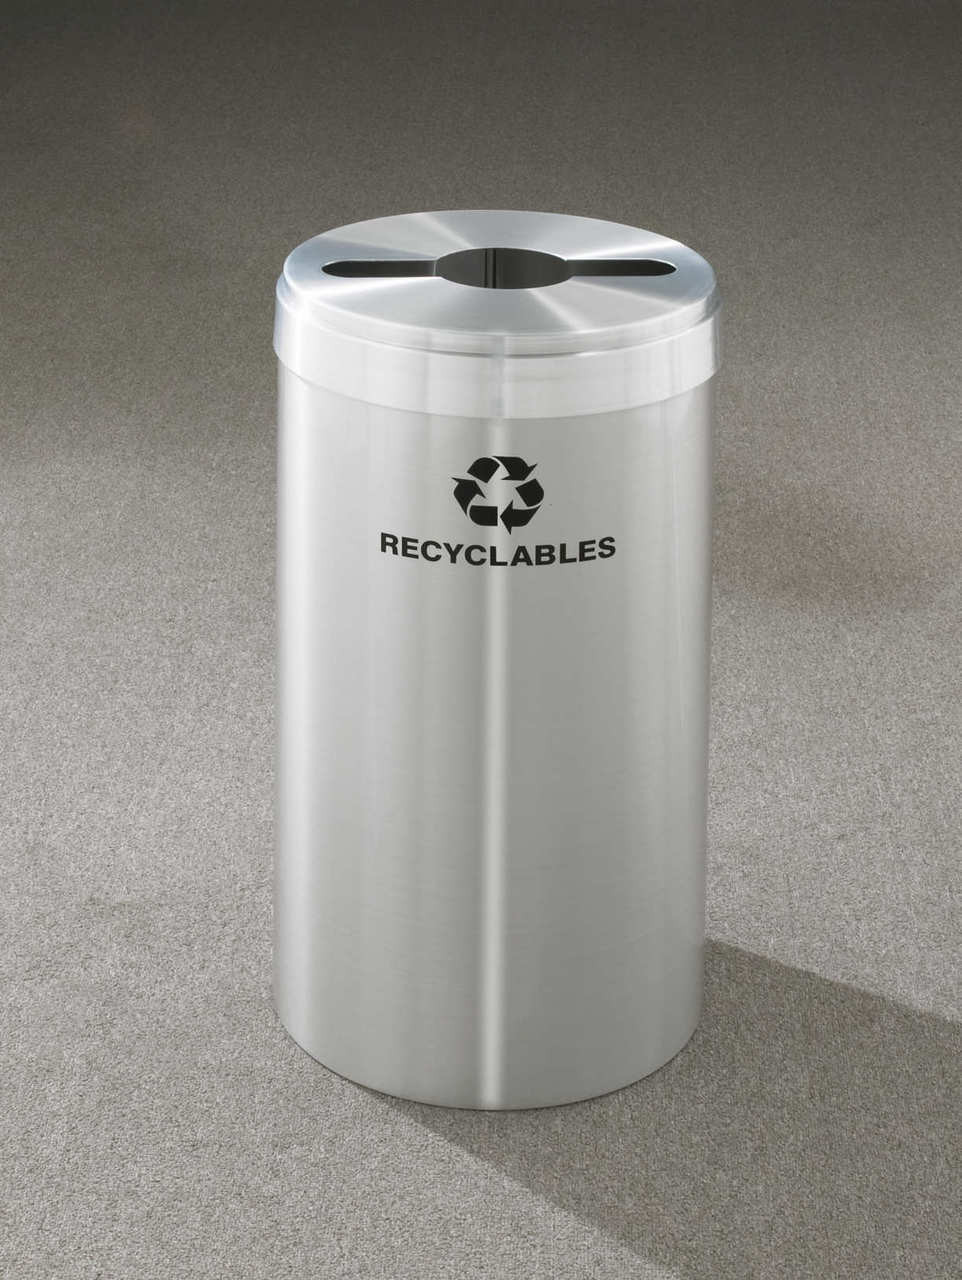 16 Gallon Metal Recycling Trash Can